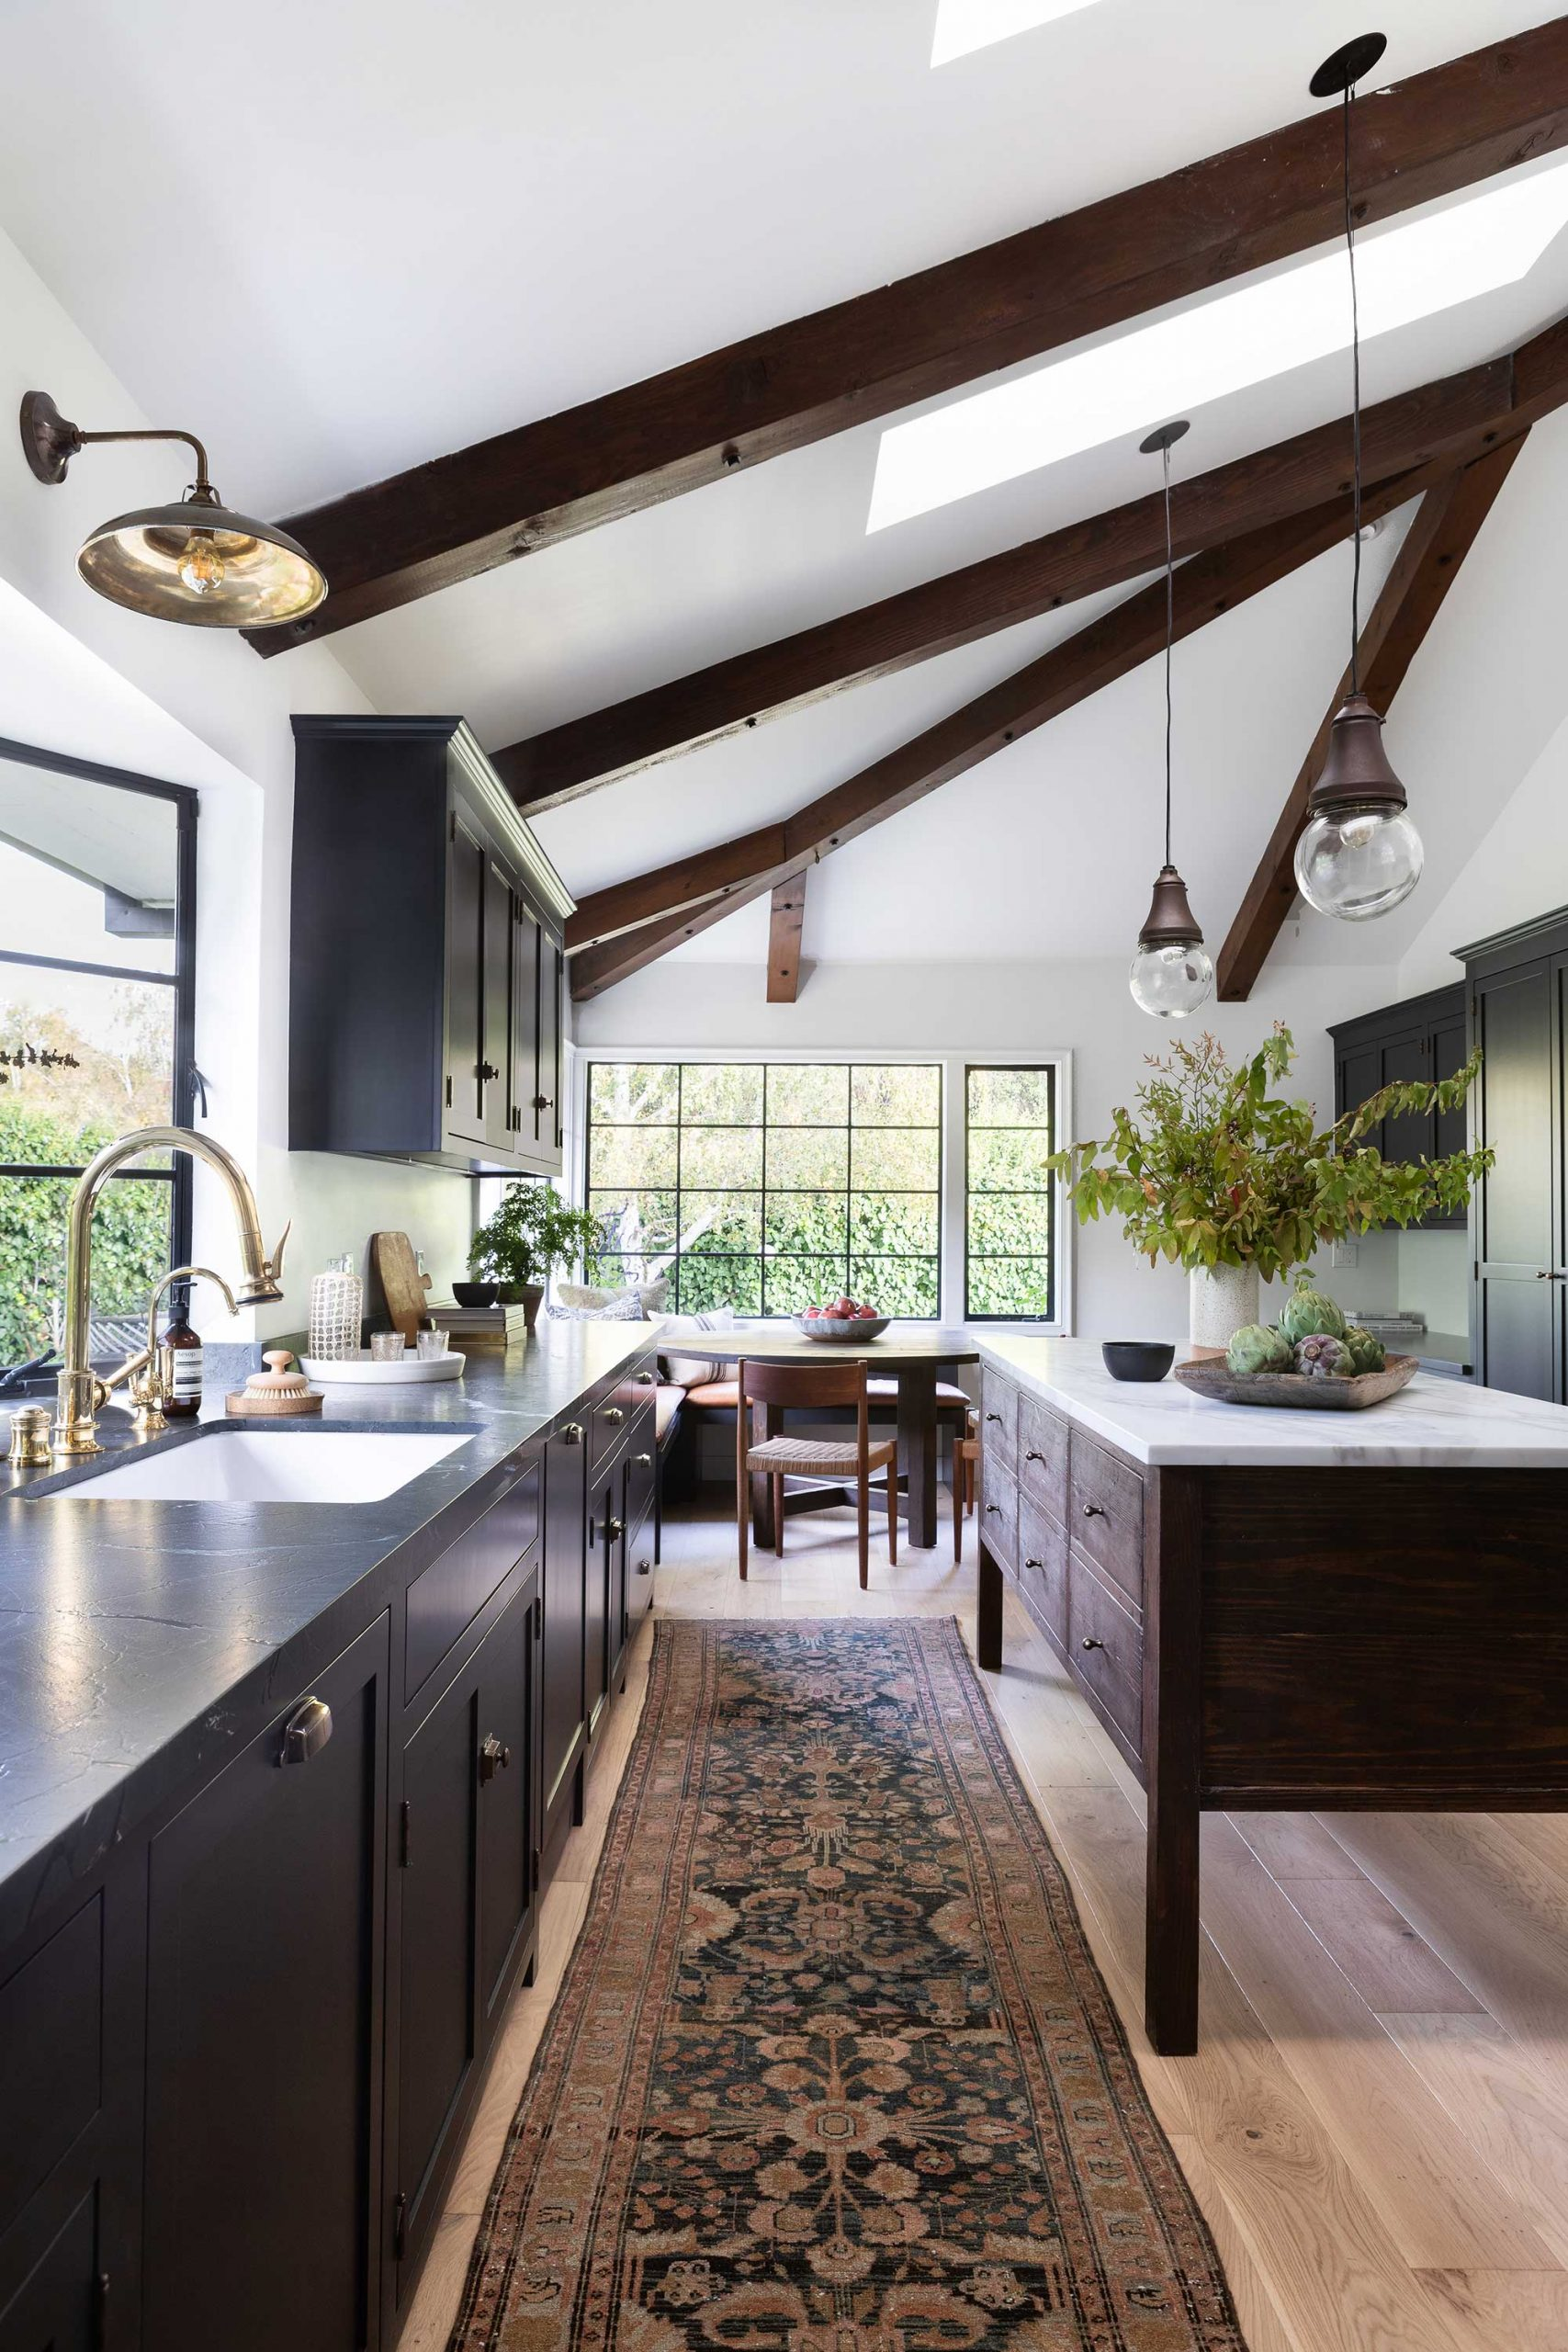 Discover The 10 Best Interior Design Projects of Amber Lewis! design projects Discover The 10 Best Interior Design Projects of Amber Lewis! Discover The 10 Best Interior Design Projects of Amber Lewis 10 scaled